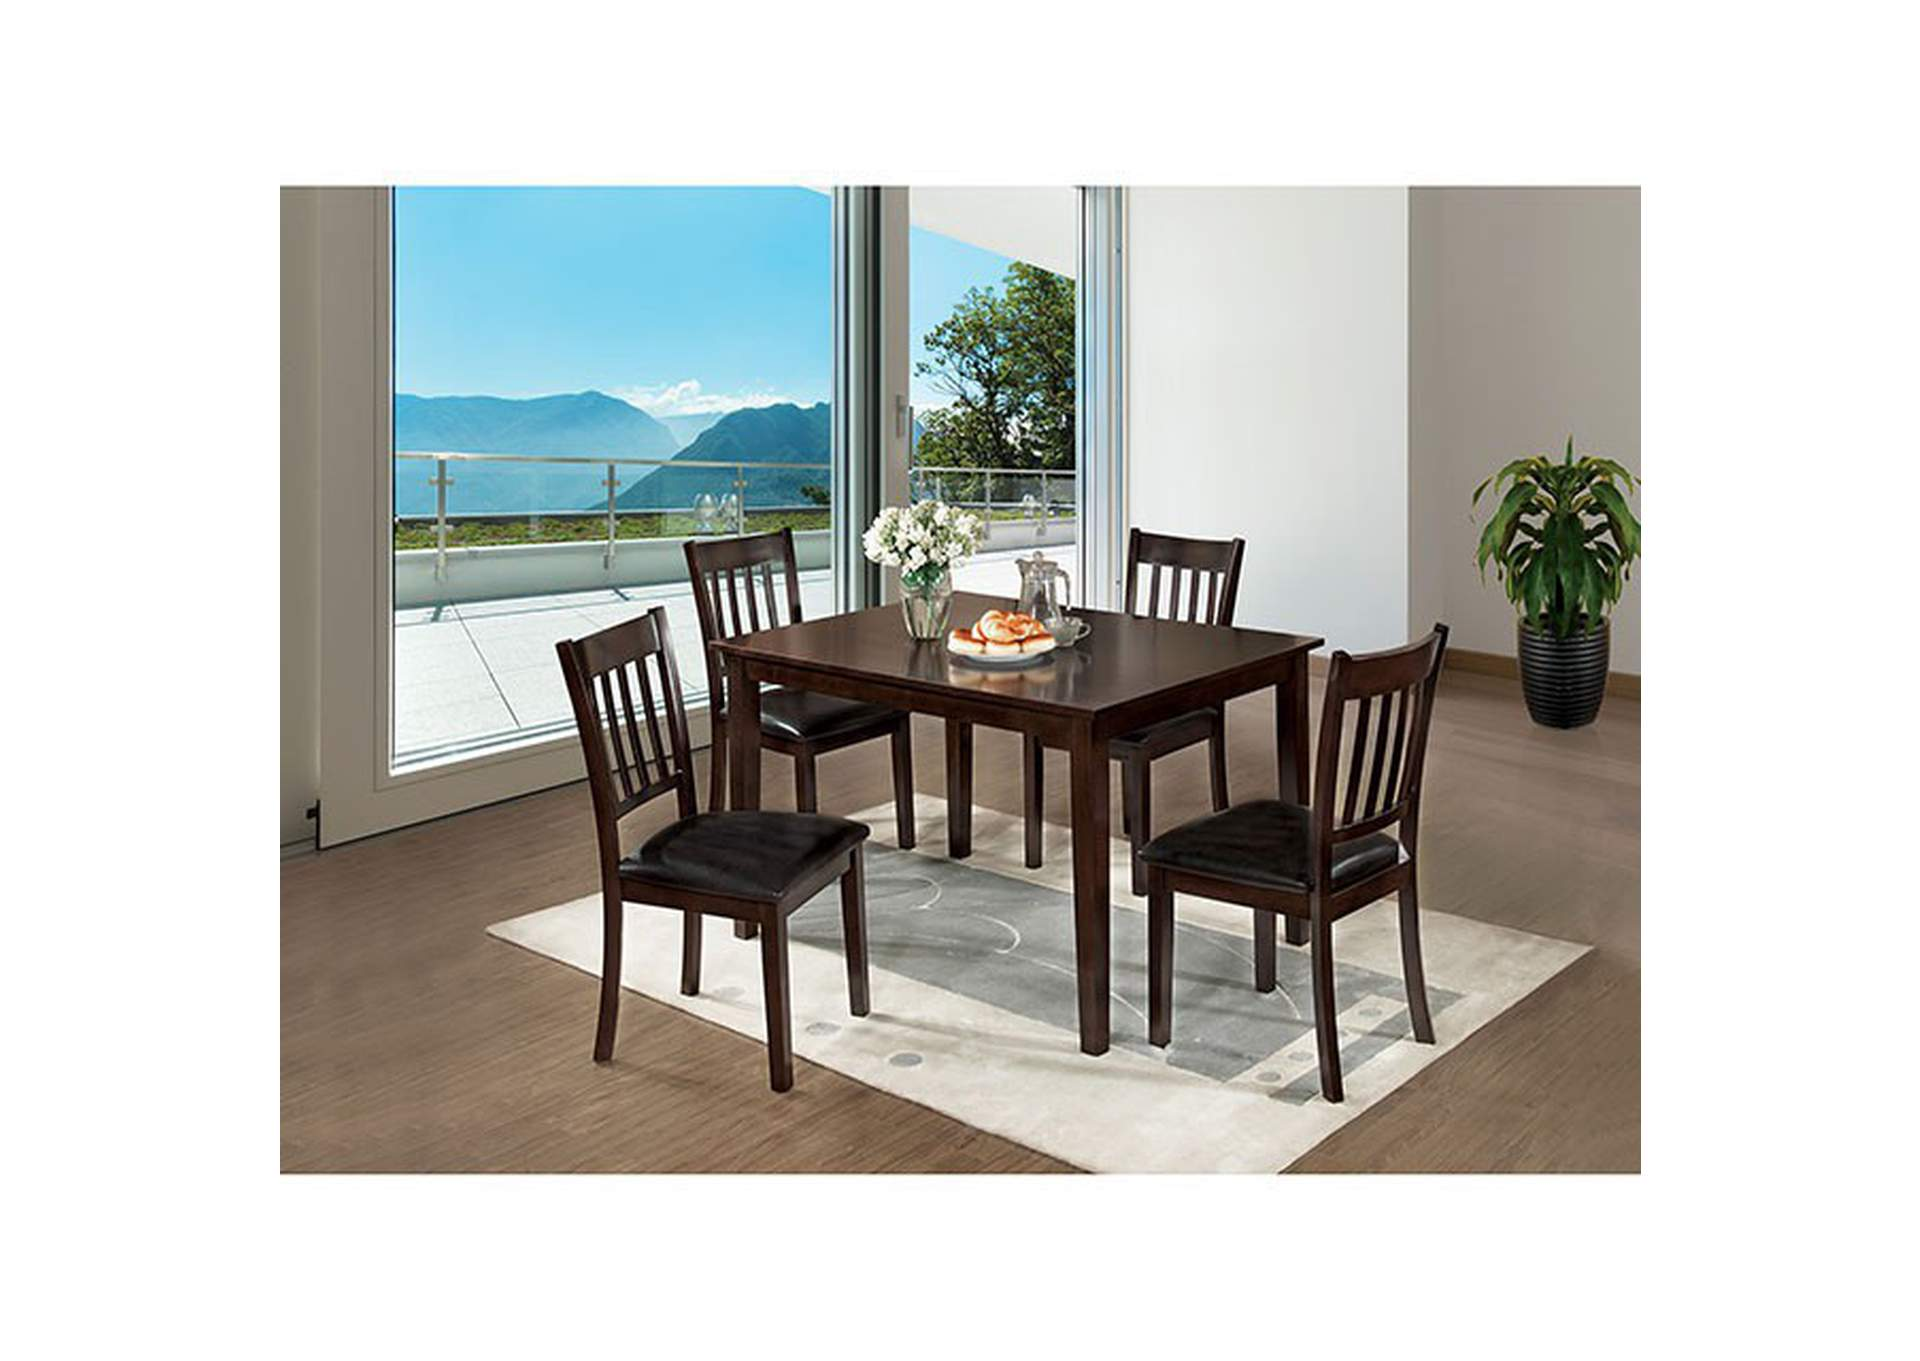 West Creek Espresso 5 Piece Dining Table Set,Furniture of America